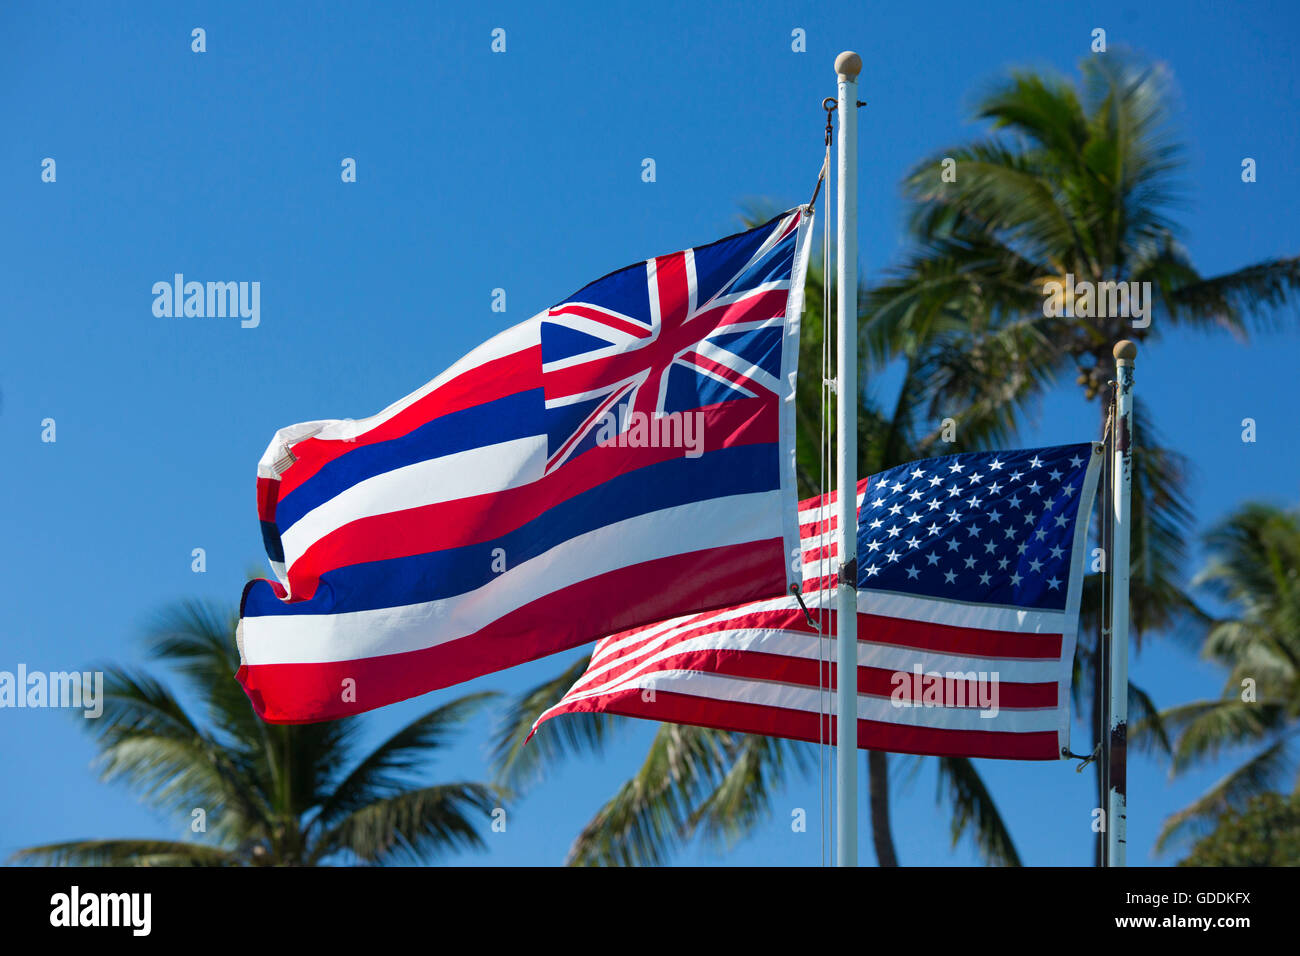 Maui,US flag bannière,USA,New York,,Nord,flag,drapeaux,palmiers, Photo Stock